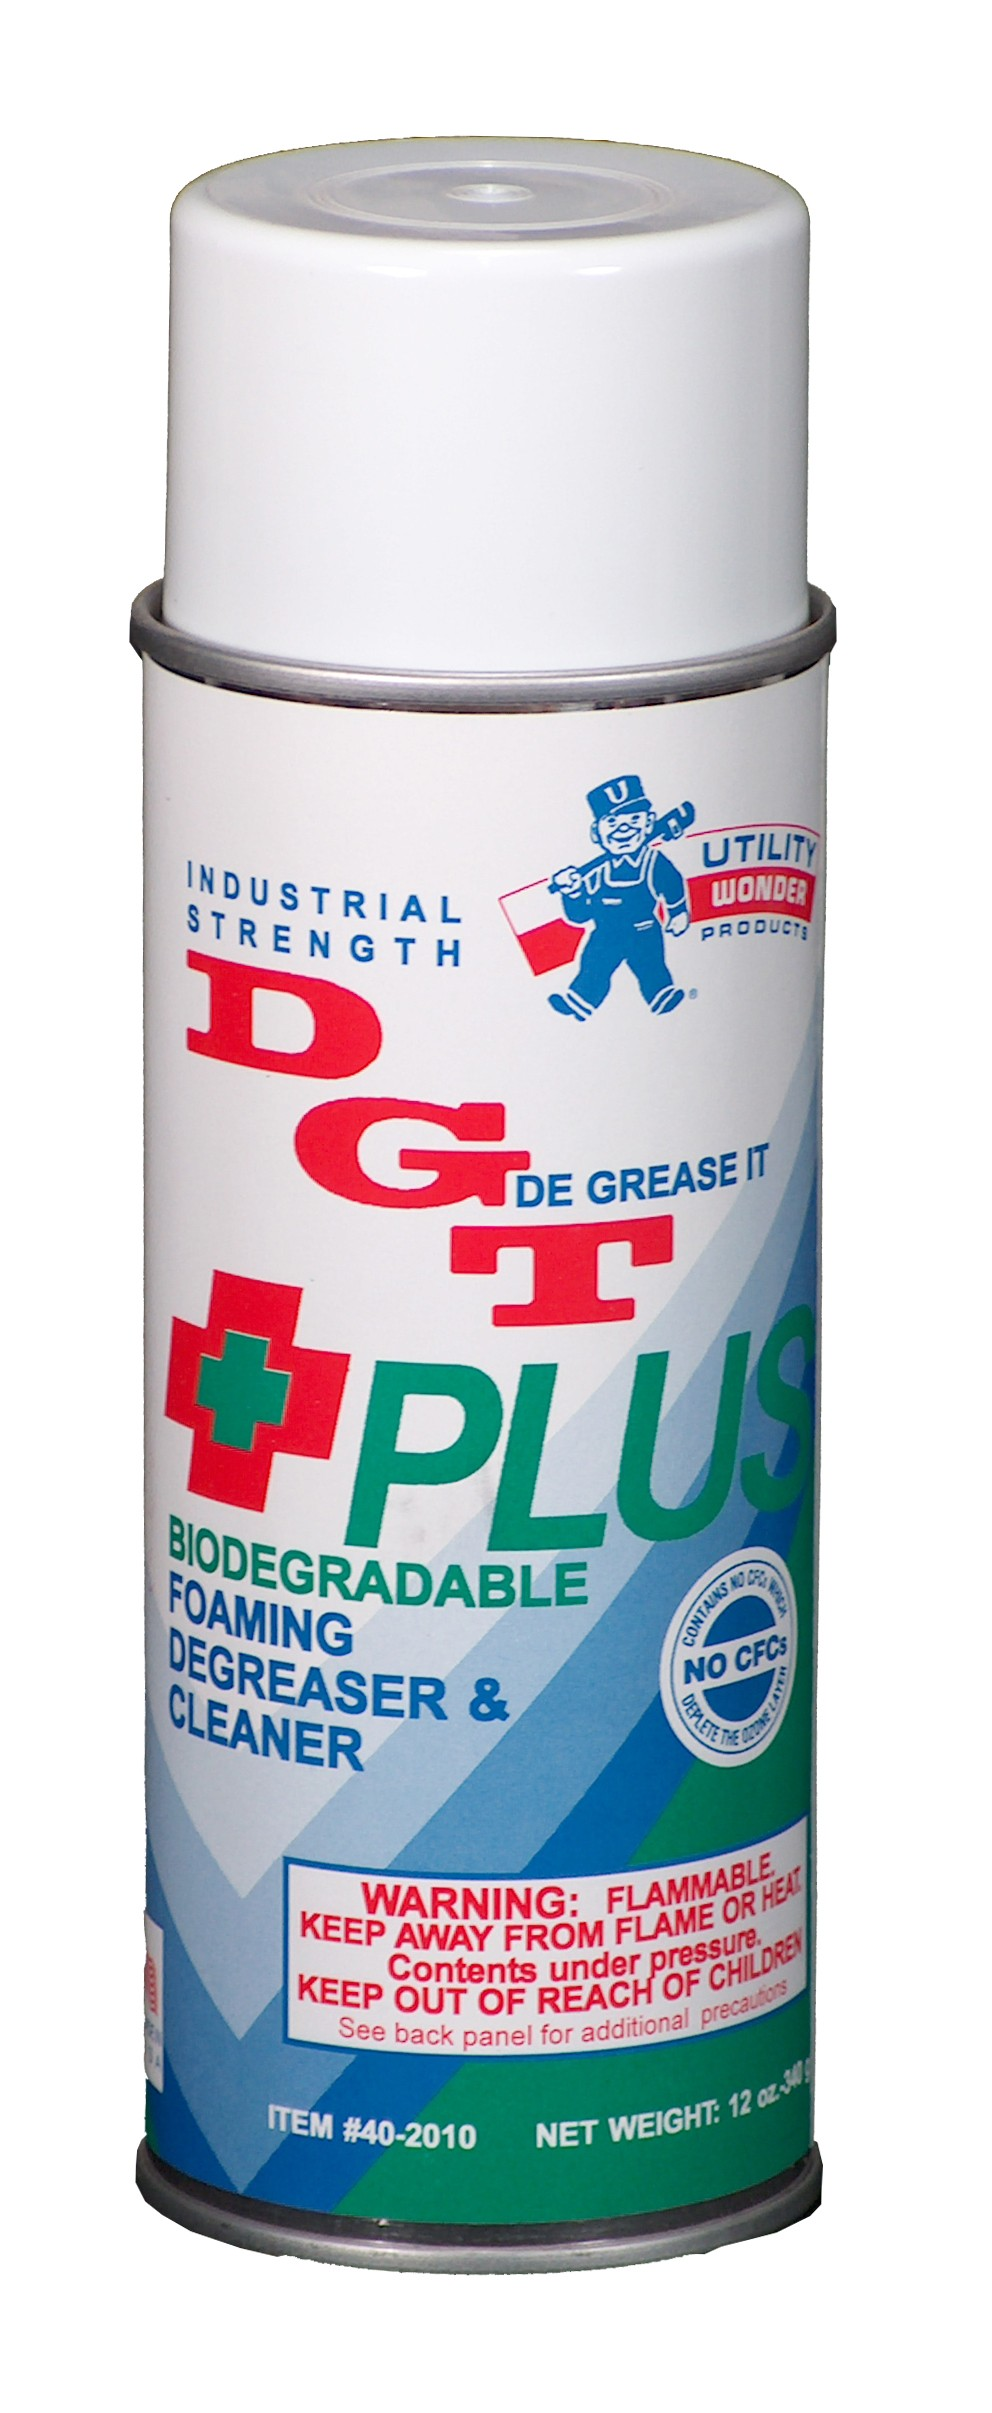 D.G.T.+PLUS 100% BIODEGRADABLE FOAMING DEGREASER AND CLEANER